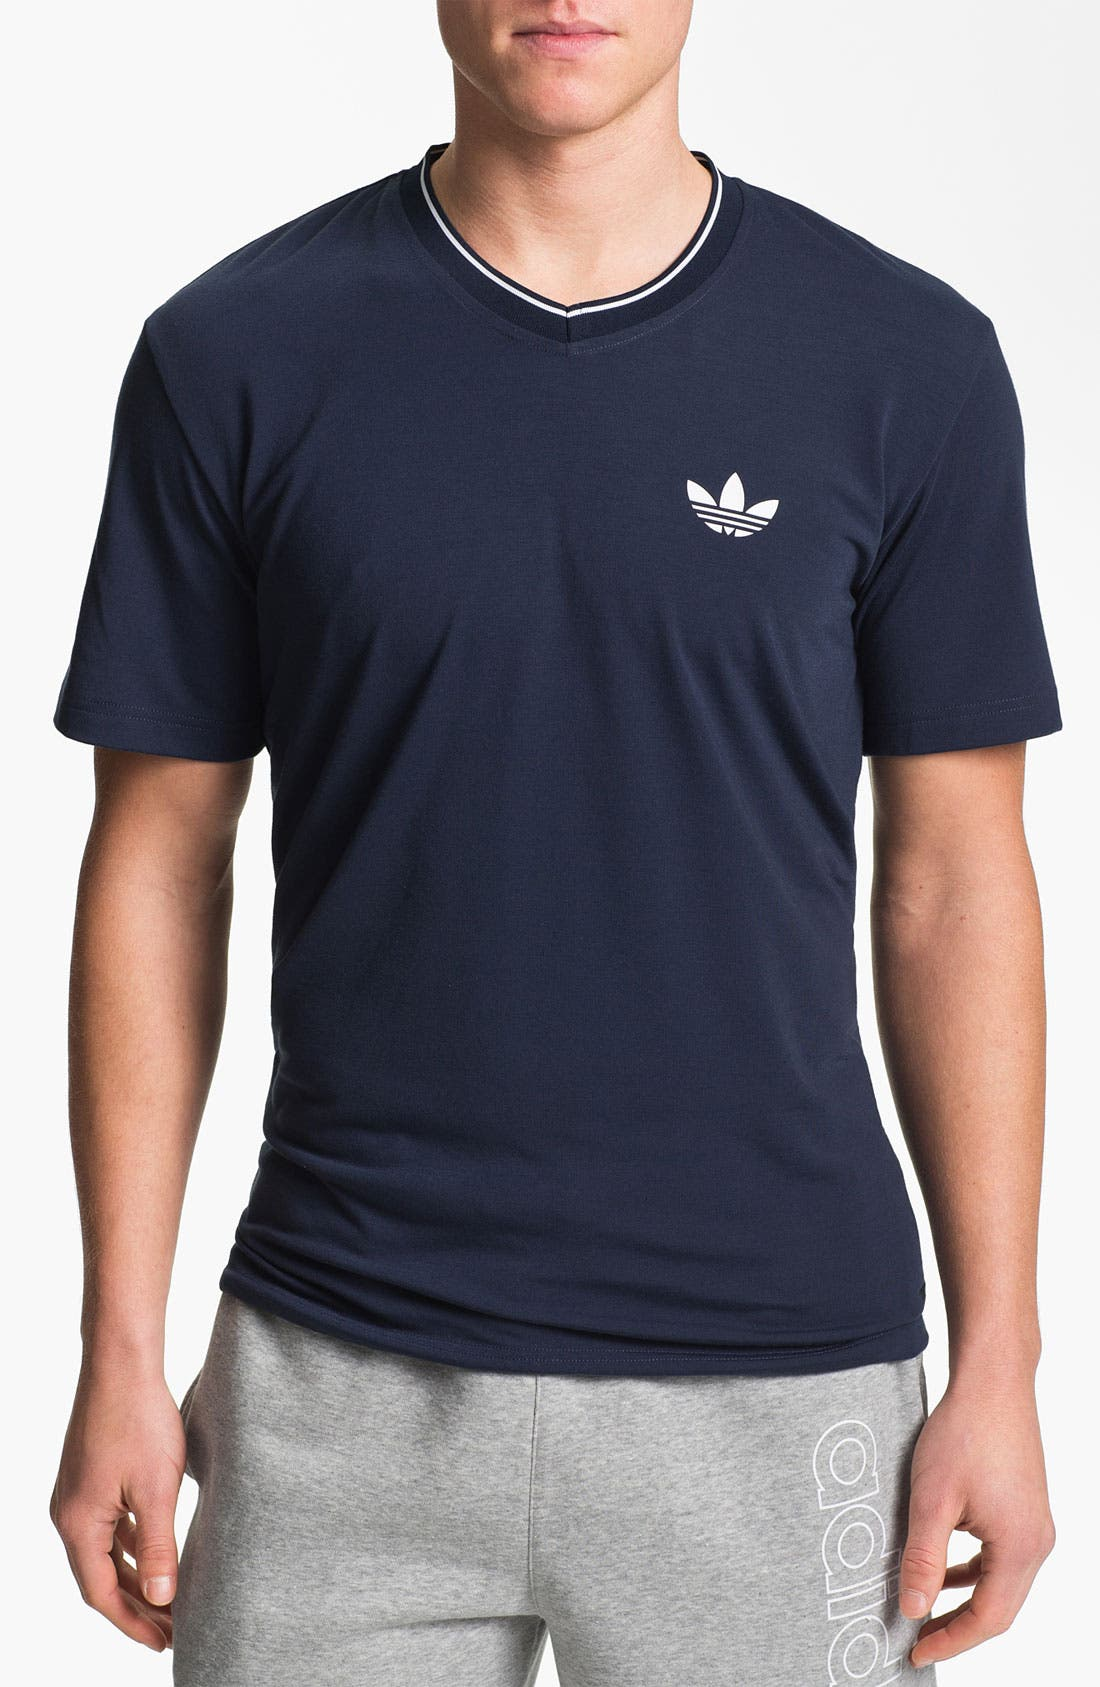 Alternate Image 1 Selected - adidas 'Ultimate' V-Neck T-Shirt